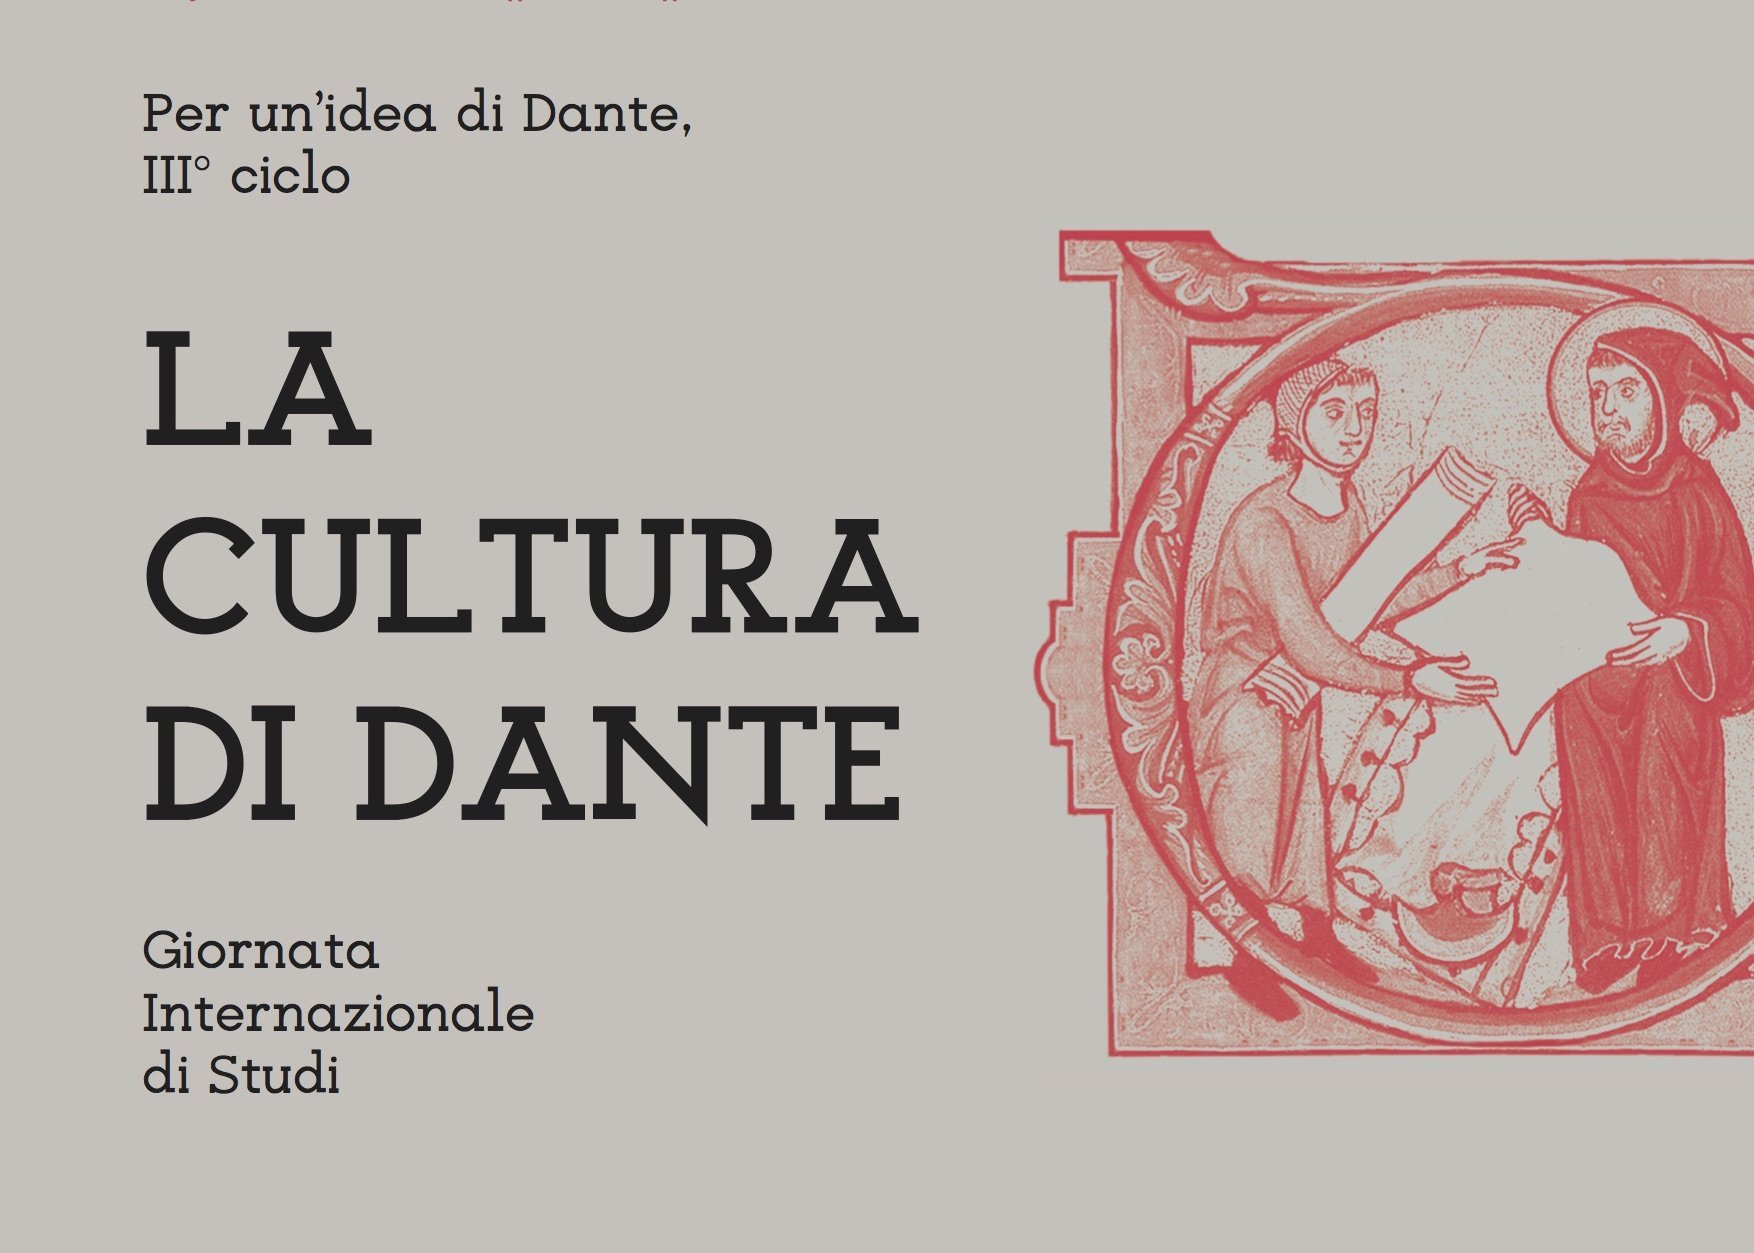 LA CULTURA DI DANTE / Dante Alighieri and his culture